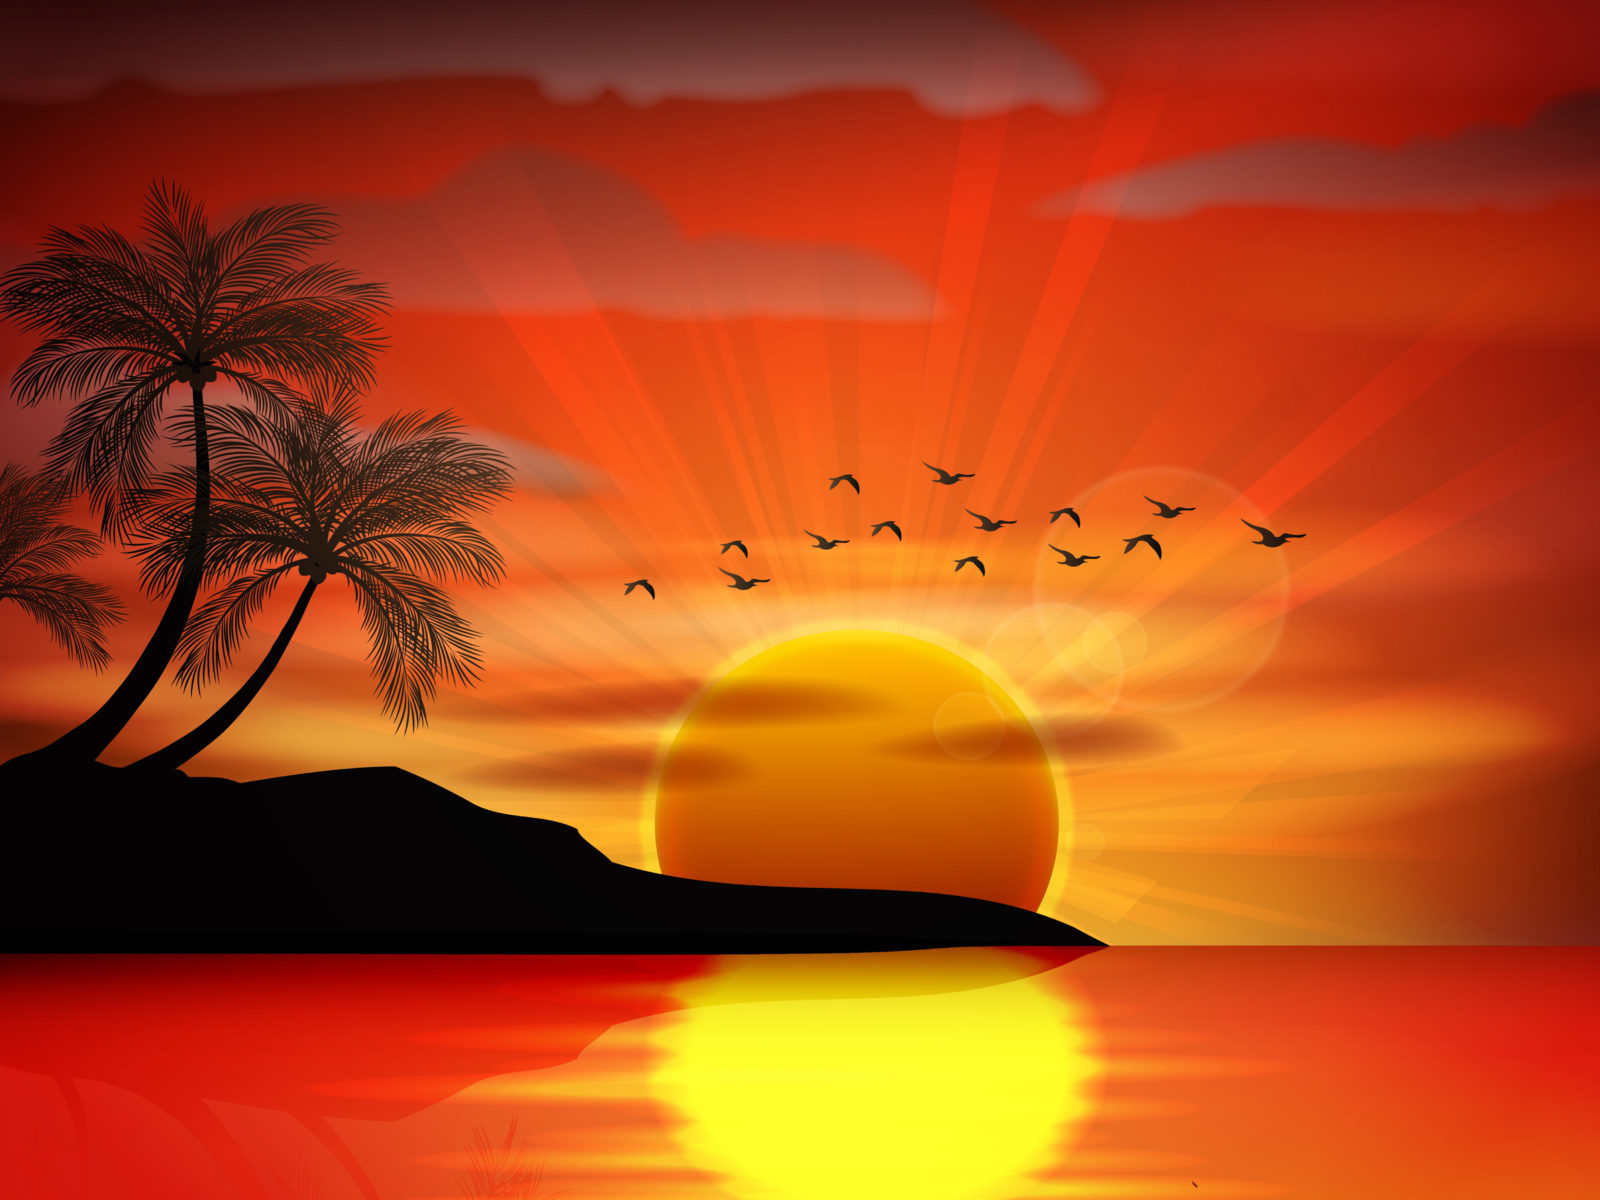 Iphone 5 Wallpaper Gold Sunset Sea Paradise Tropical Island Palms Silhouette Birds